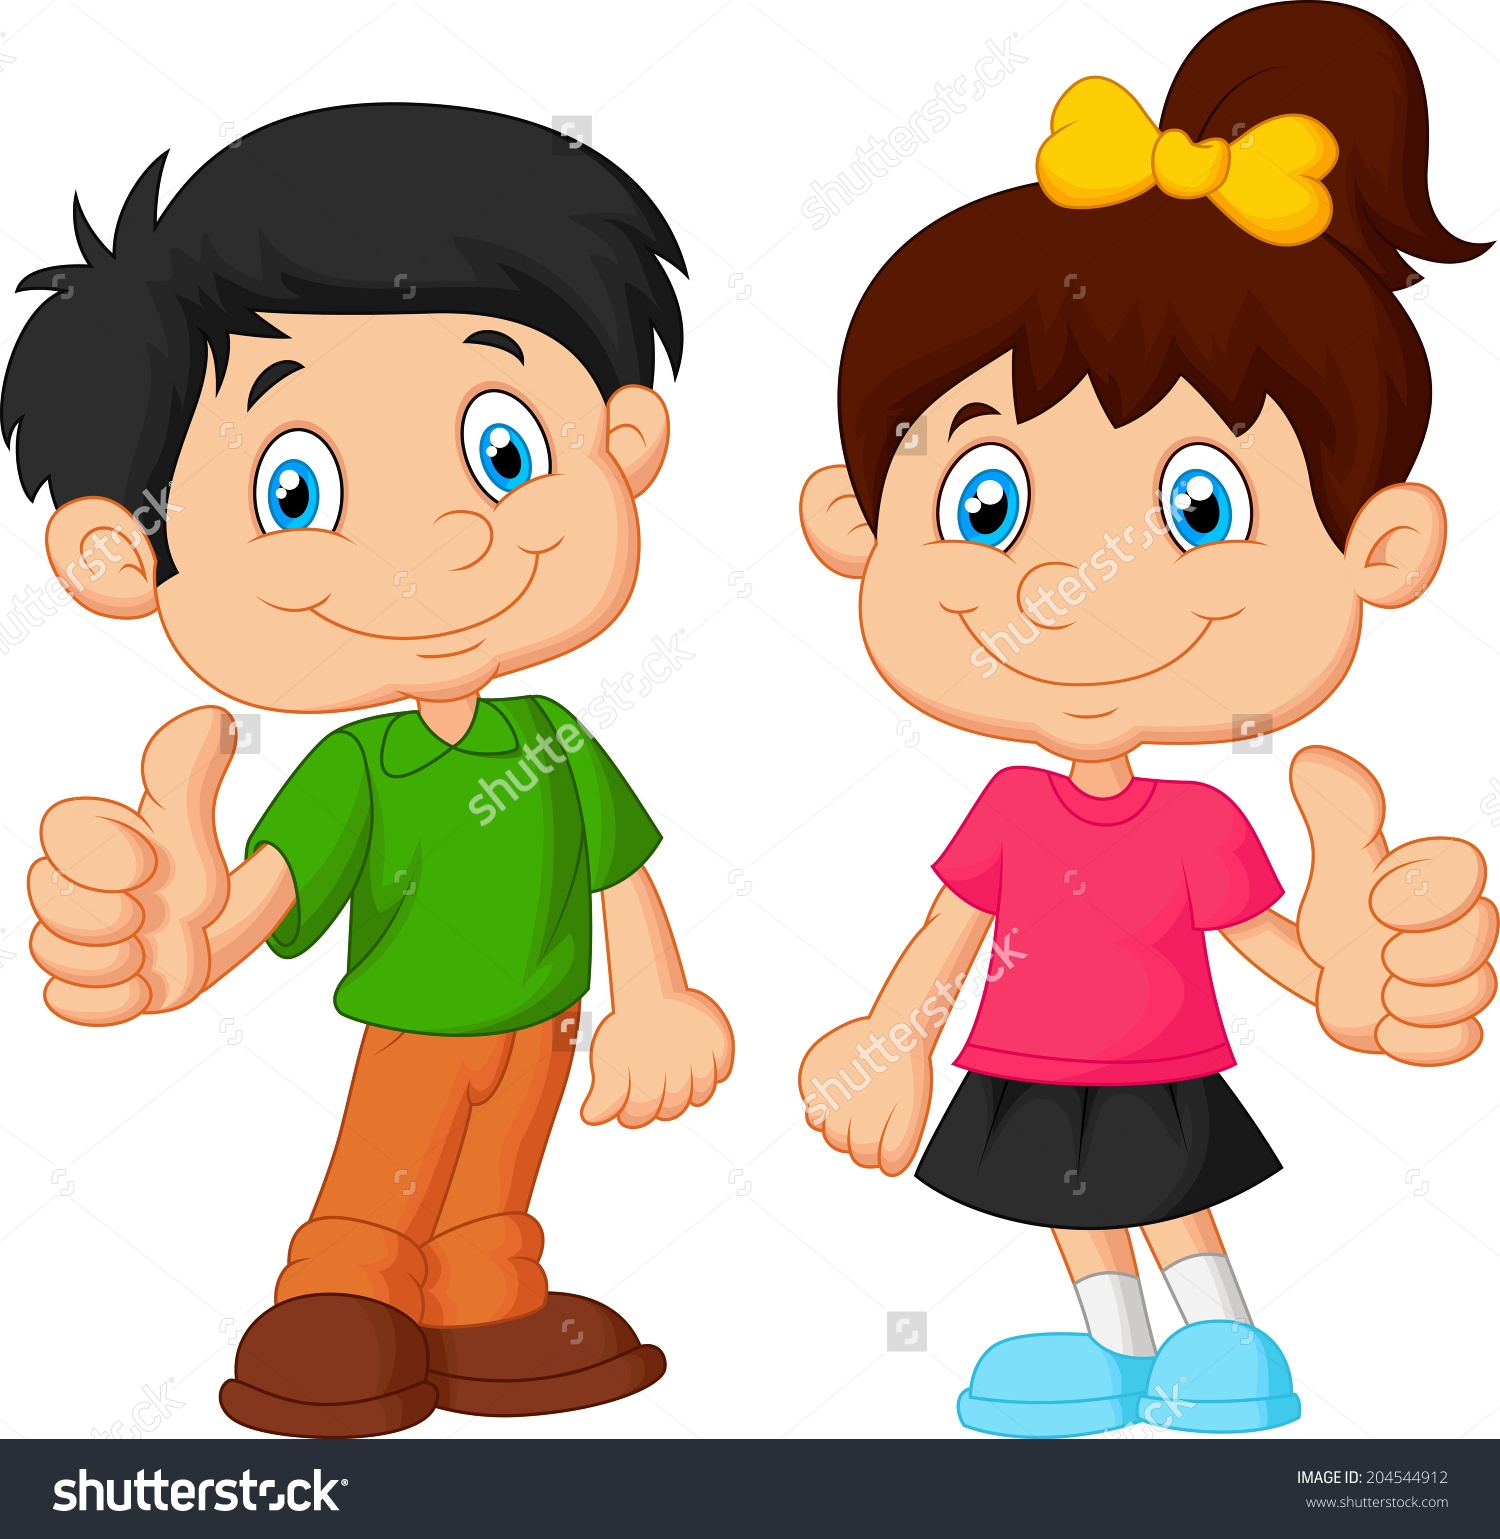 Thumbs up kid clipart graphic library library Thumbs up kid clipart - ClipartFest graphic library library